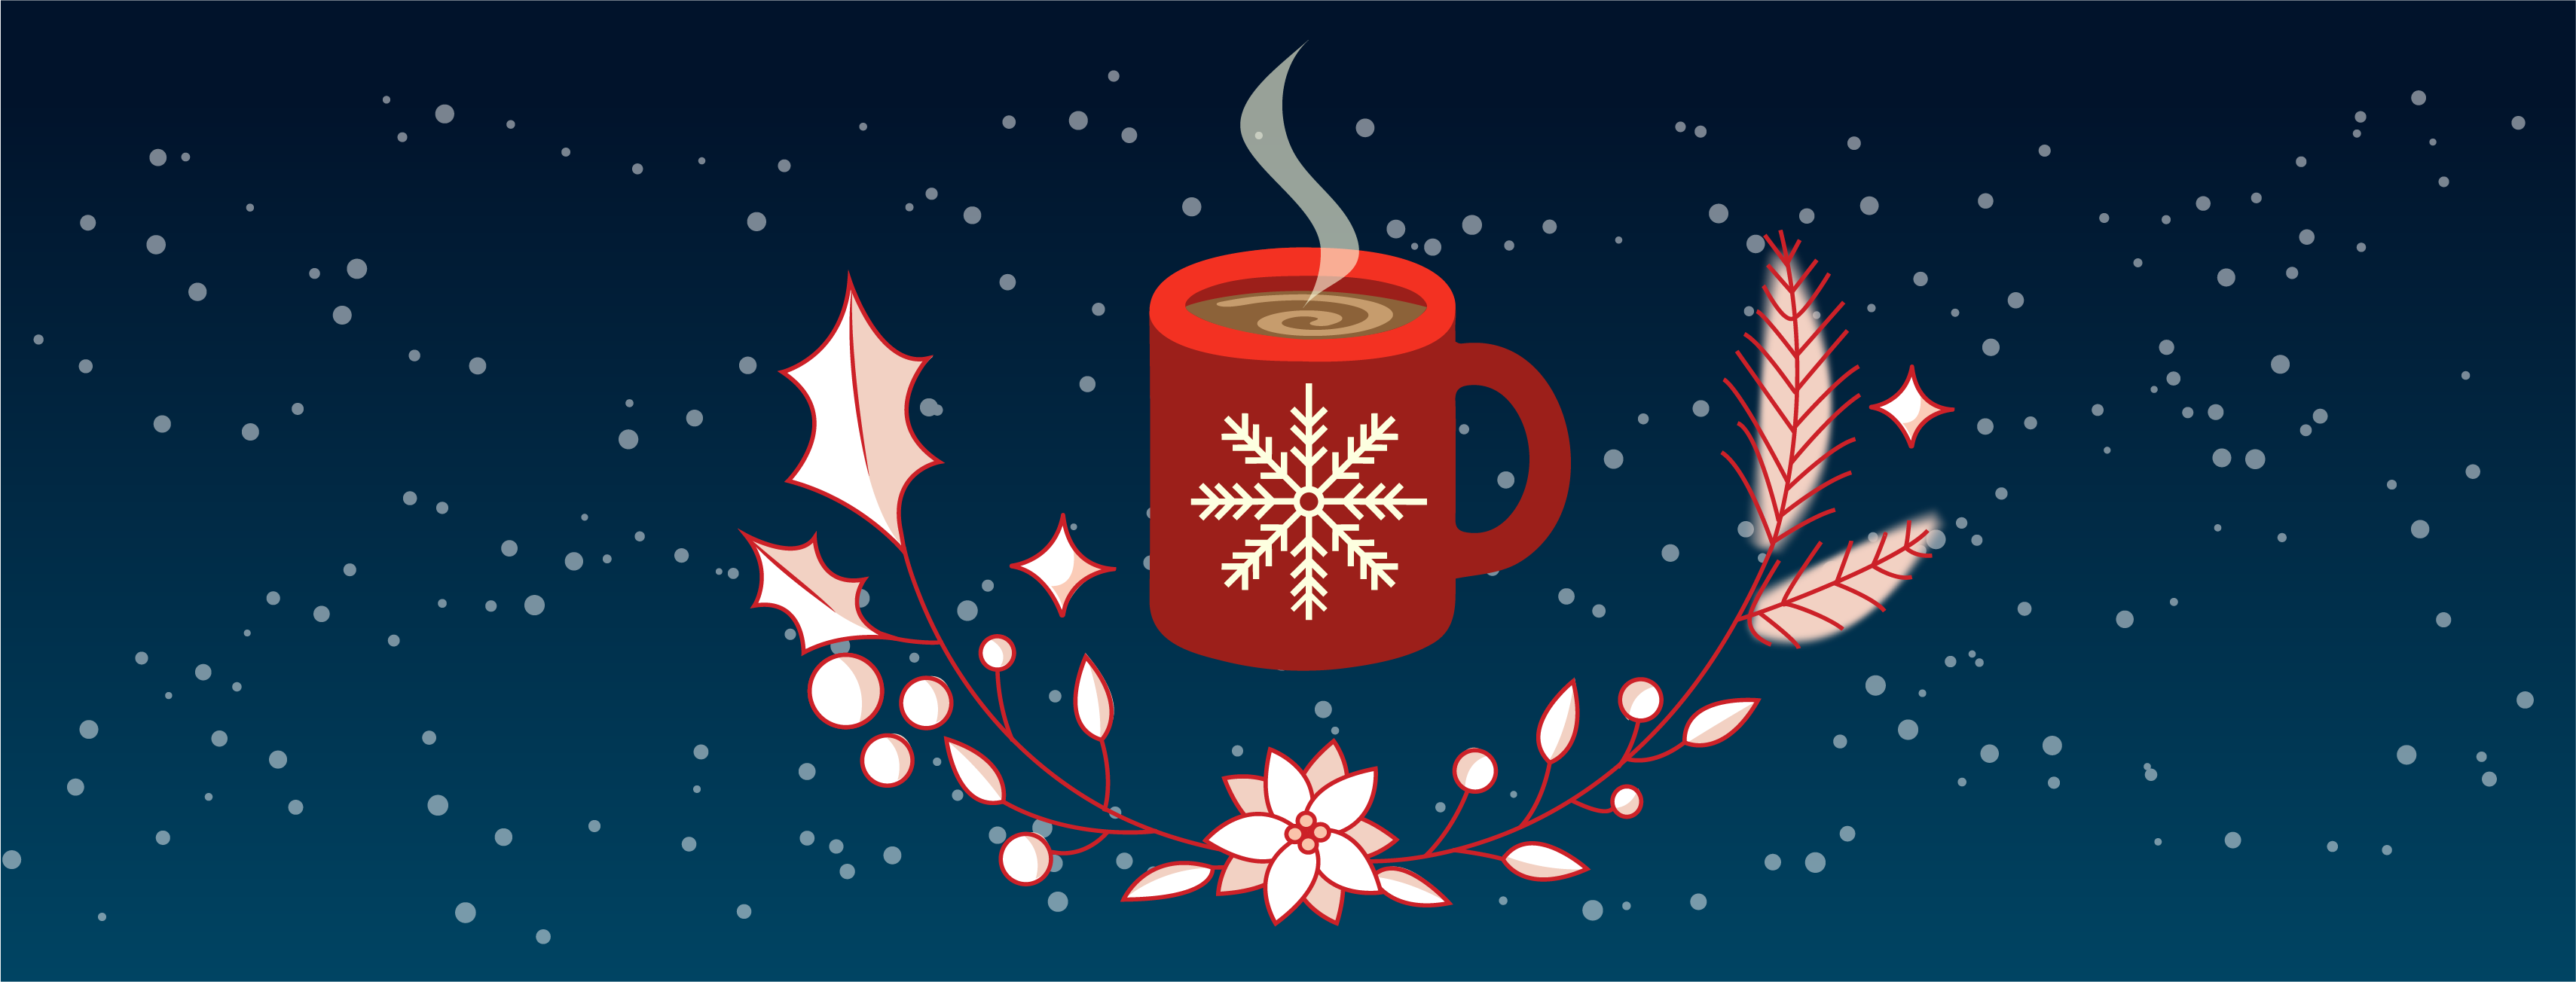 Digital art banner of a red cup of steaming hot chocolate. Underneath the cup are winter decorative plants and vines. The background is a dark to navy blue gradient with gentle snowflakes.